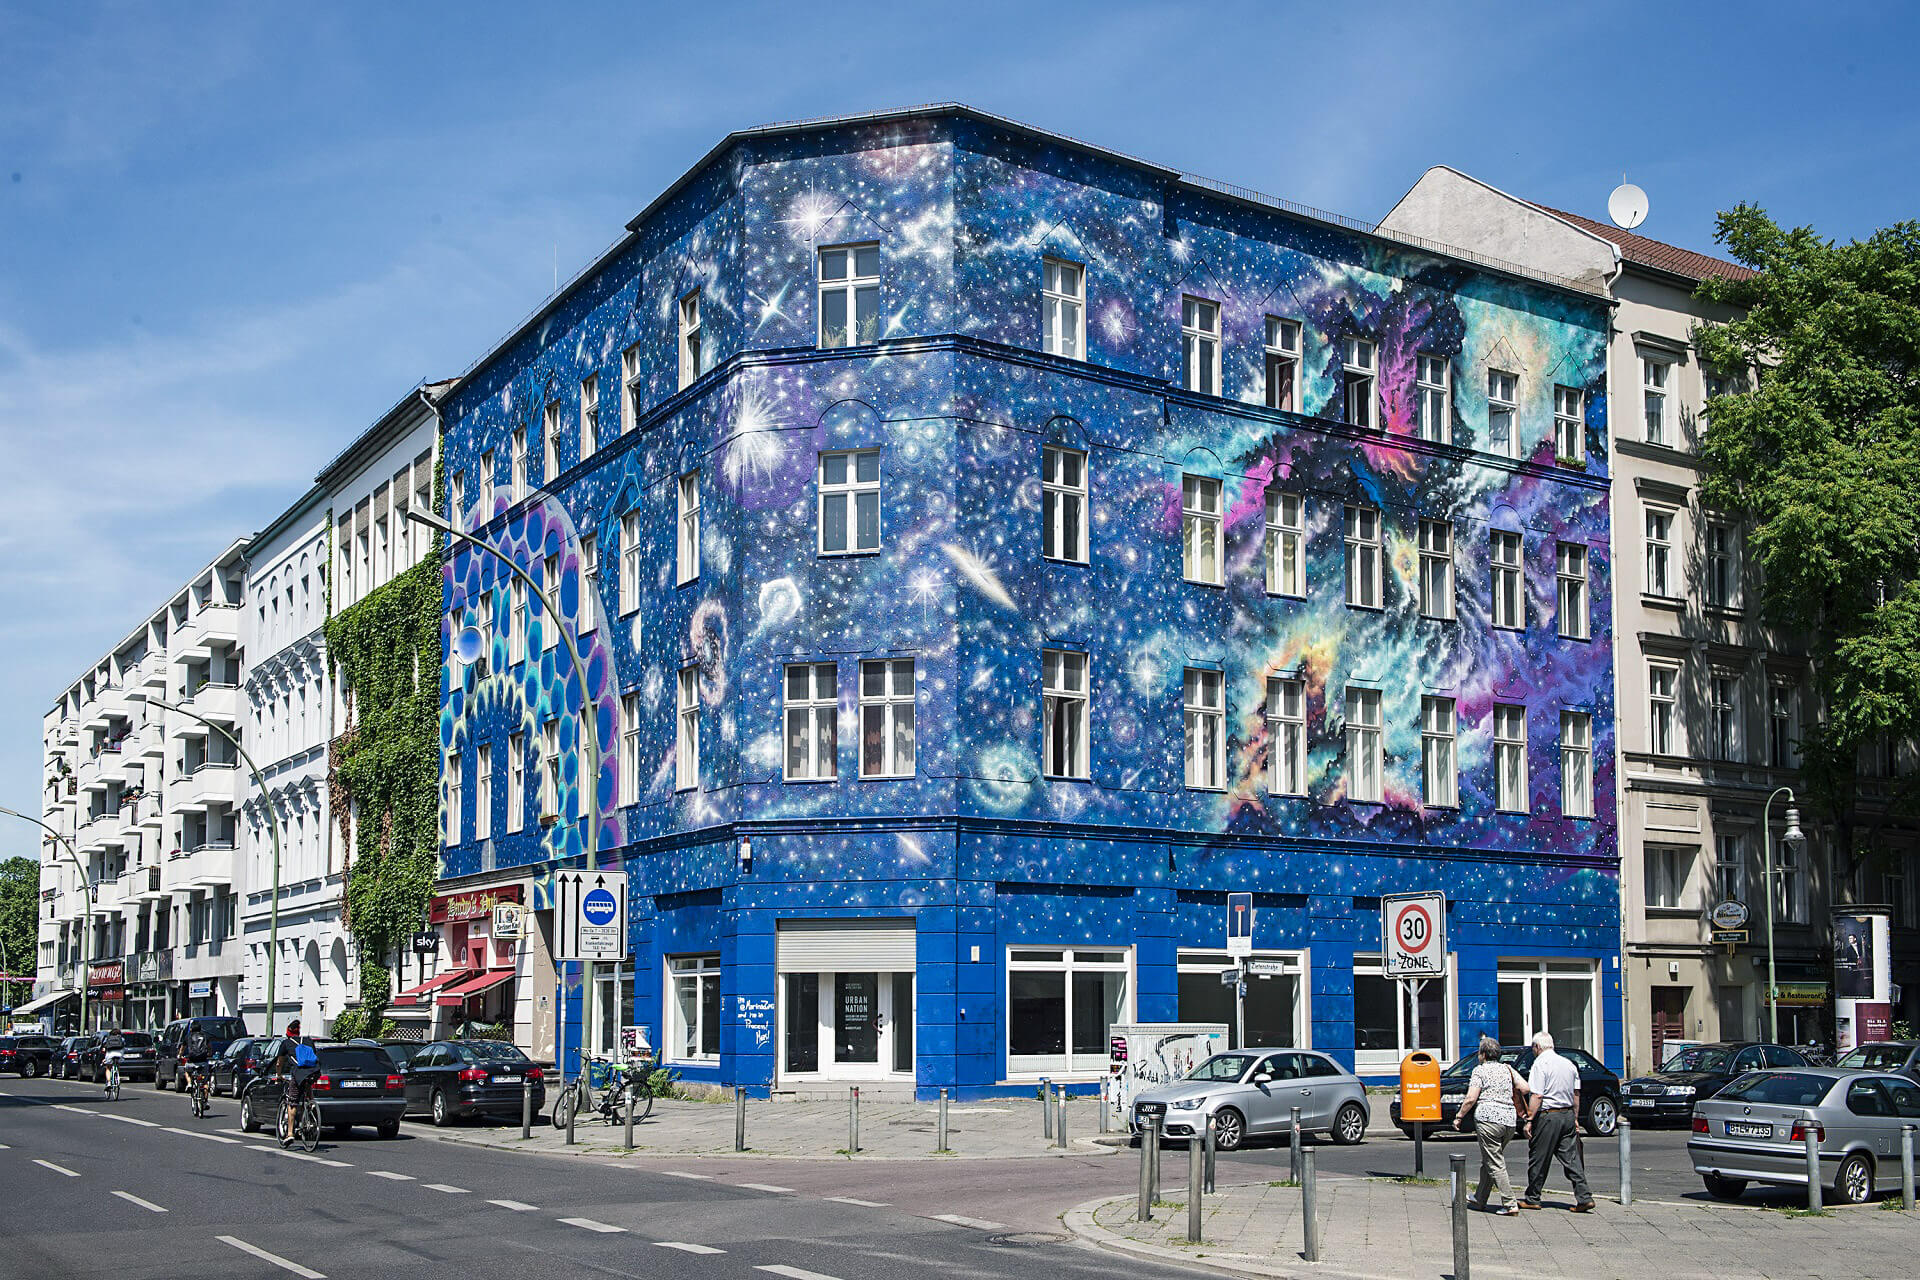 Berlin - Cities in which you will be able to enjoy street art